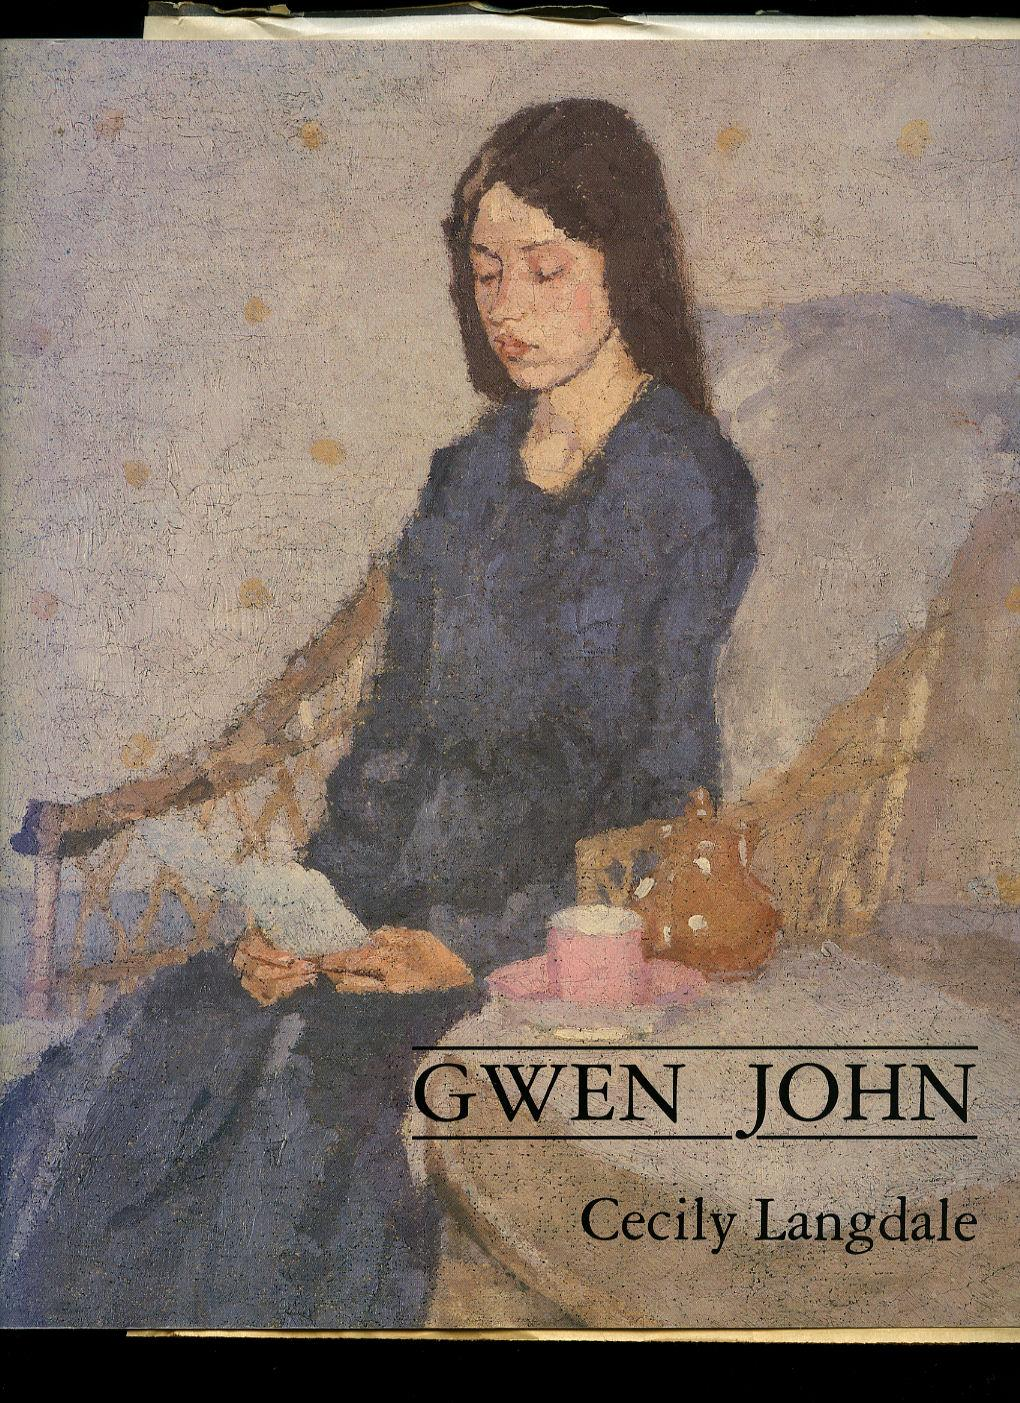 Gwen John | With a Catalogue Raisonné of the Paintings and a Selection of the Drawings - Langdale, Cecily [Gwendolen Mary John (22 June 1876 - 18 September 1939) was a Welsh artist who worked in France for most of her career. Her paintings, mainly portraits of anonymous female sitters, are rendered in a range of closely related tones. Although she was overshadowed during her lifetime by her brother Augustus John, her reputation has grown steadily since her death]. Squadron Leader John Eric Tipton DFC* (1918-2018) British officer served as a navigator with 40 Squadron, RAF in Great Britain and Malta, 1941-1942; served with 109 Squadron, Pathfinder Force, RAF in Great Britain, 1943-1944; served as Oboe (British aerial blind bombing system in World War II, based on radio transponder technology), ground controller in Netherlands, 1944-1945.